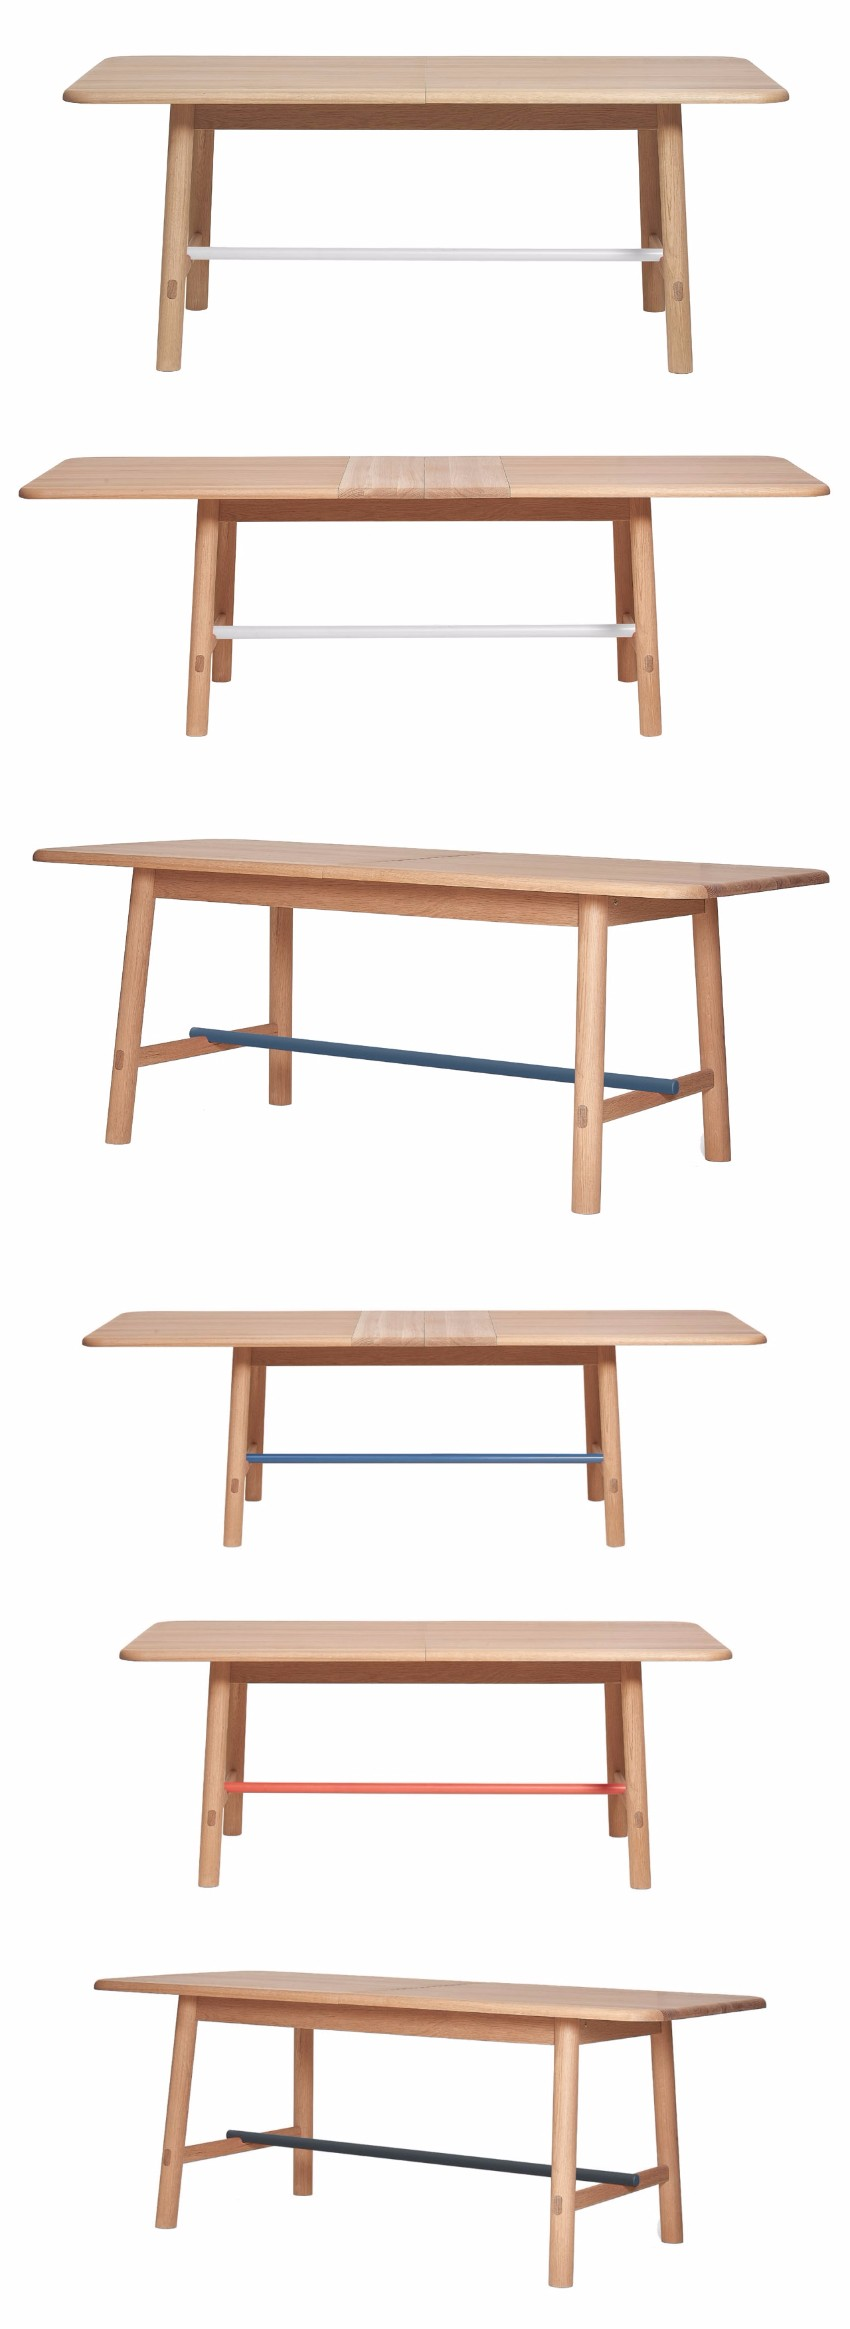 table Hélène Table and Hector Bench by HARTÔ  1 down